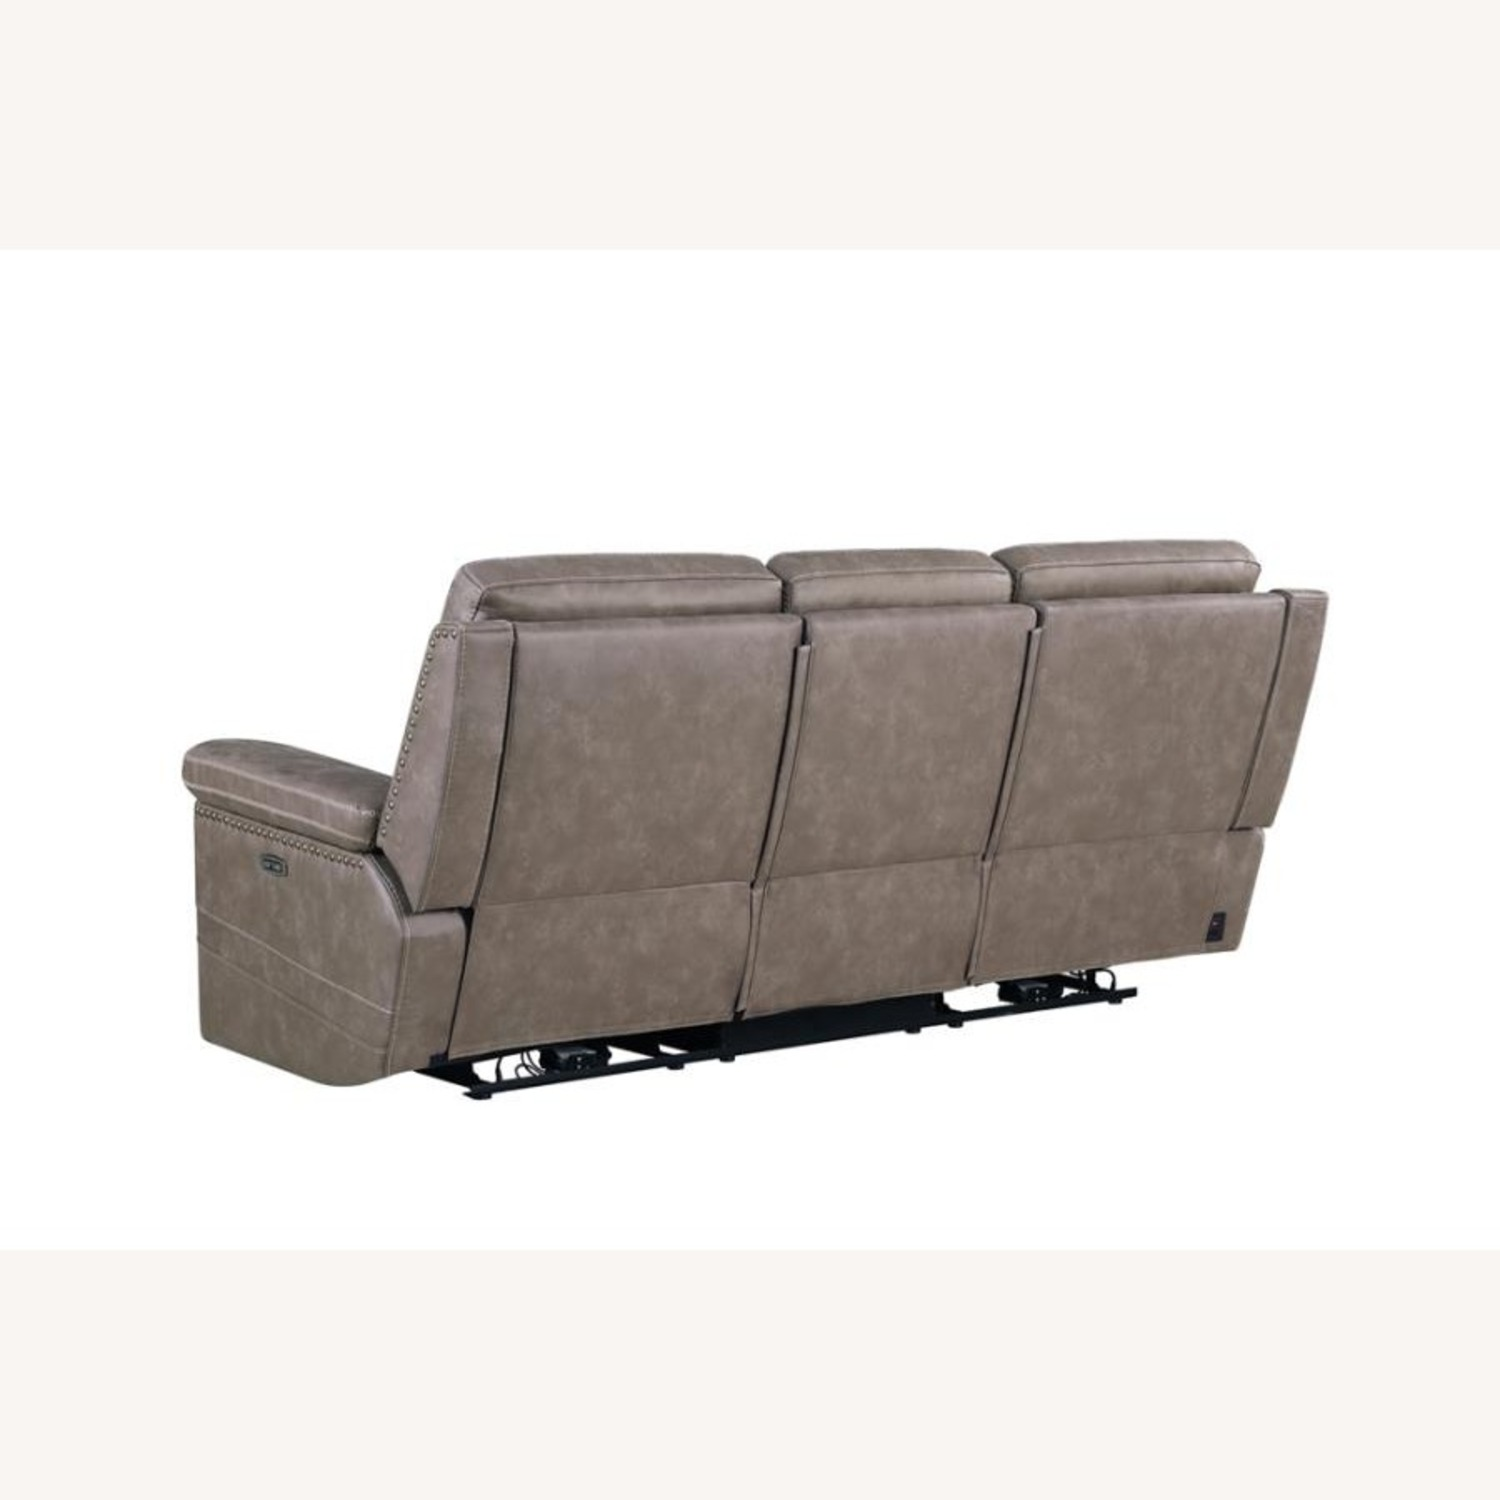 Power Sofa Recliner In Taupe Upholstery - image-3